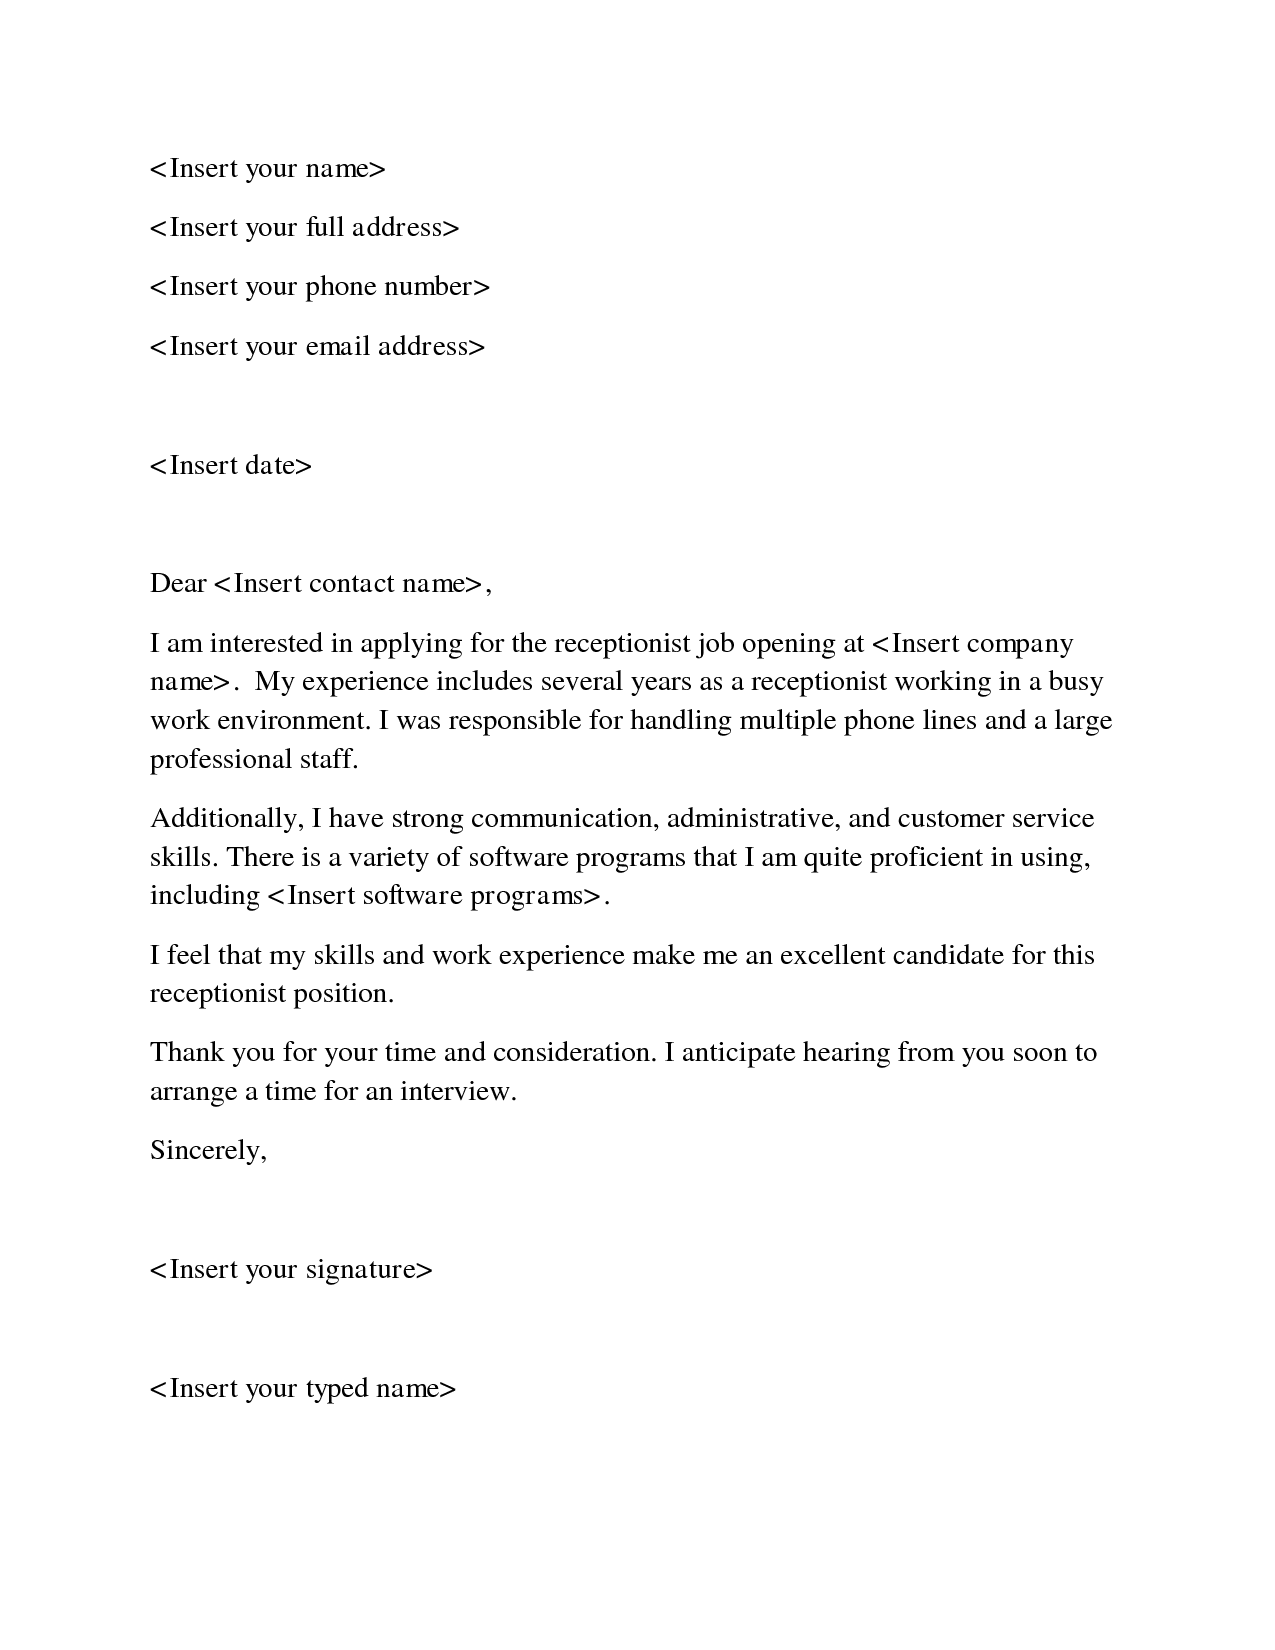 cover letter help receptionist resume top essay writingcover letter samples for jobs application letter sample - Professional Job Application Cover Letter